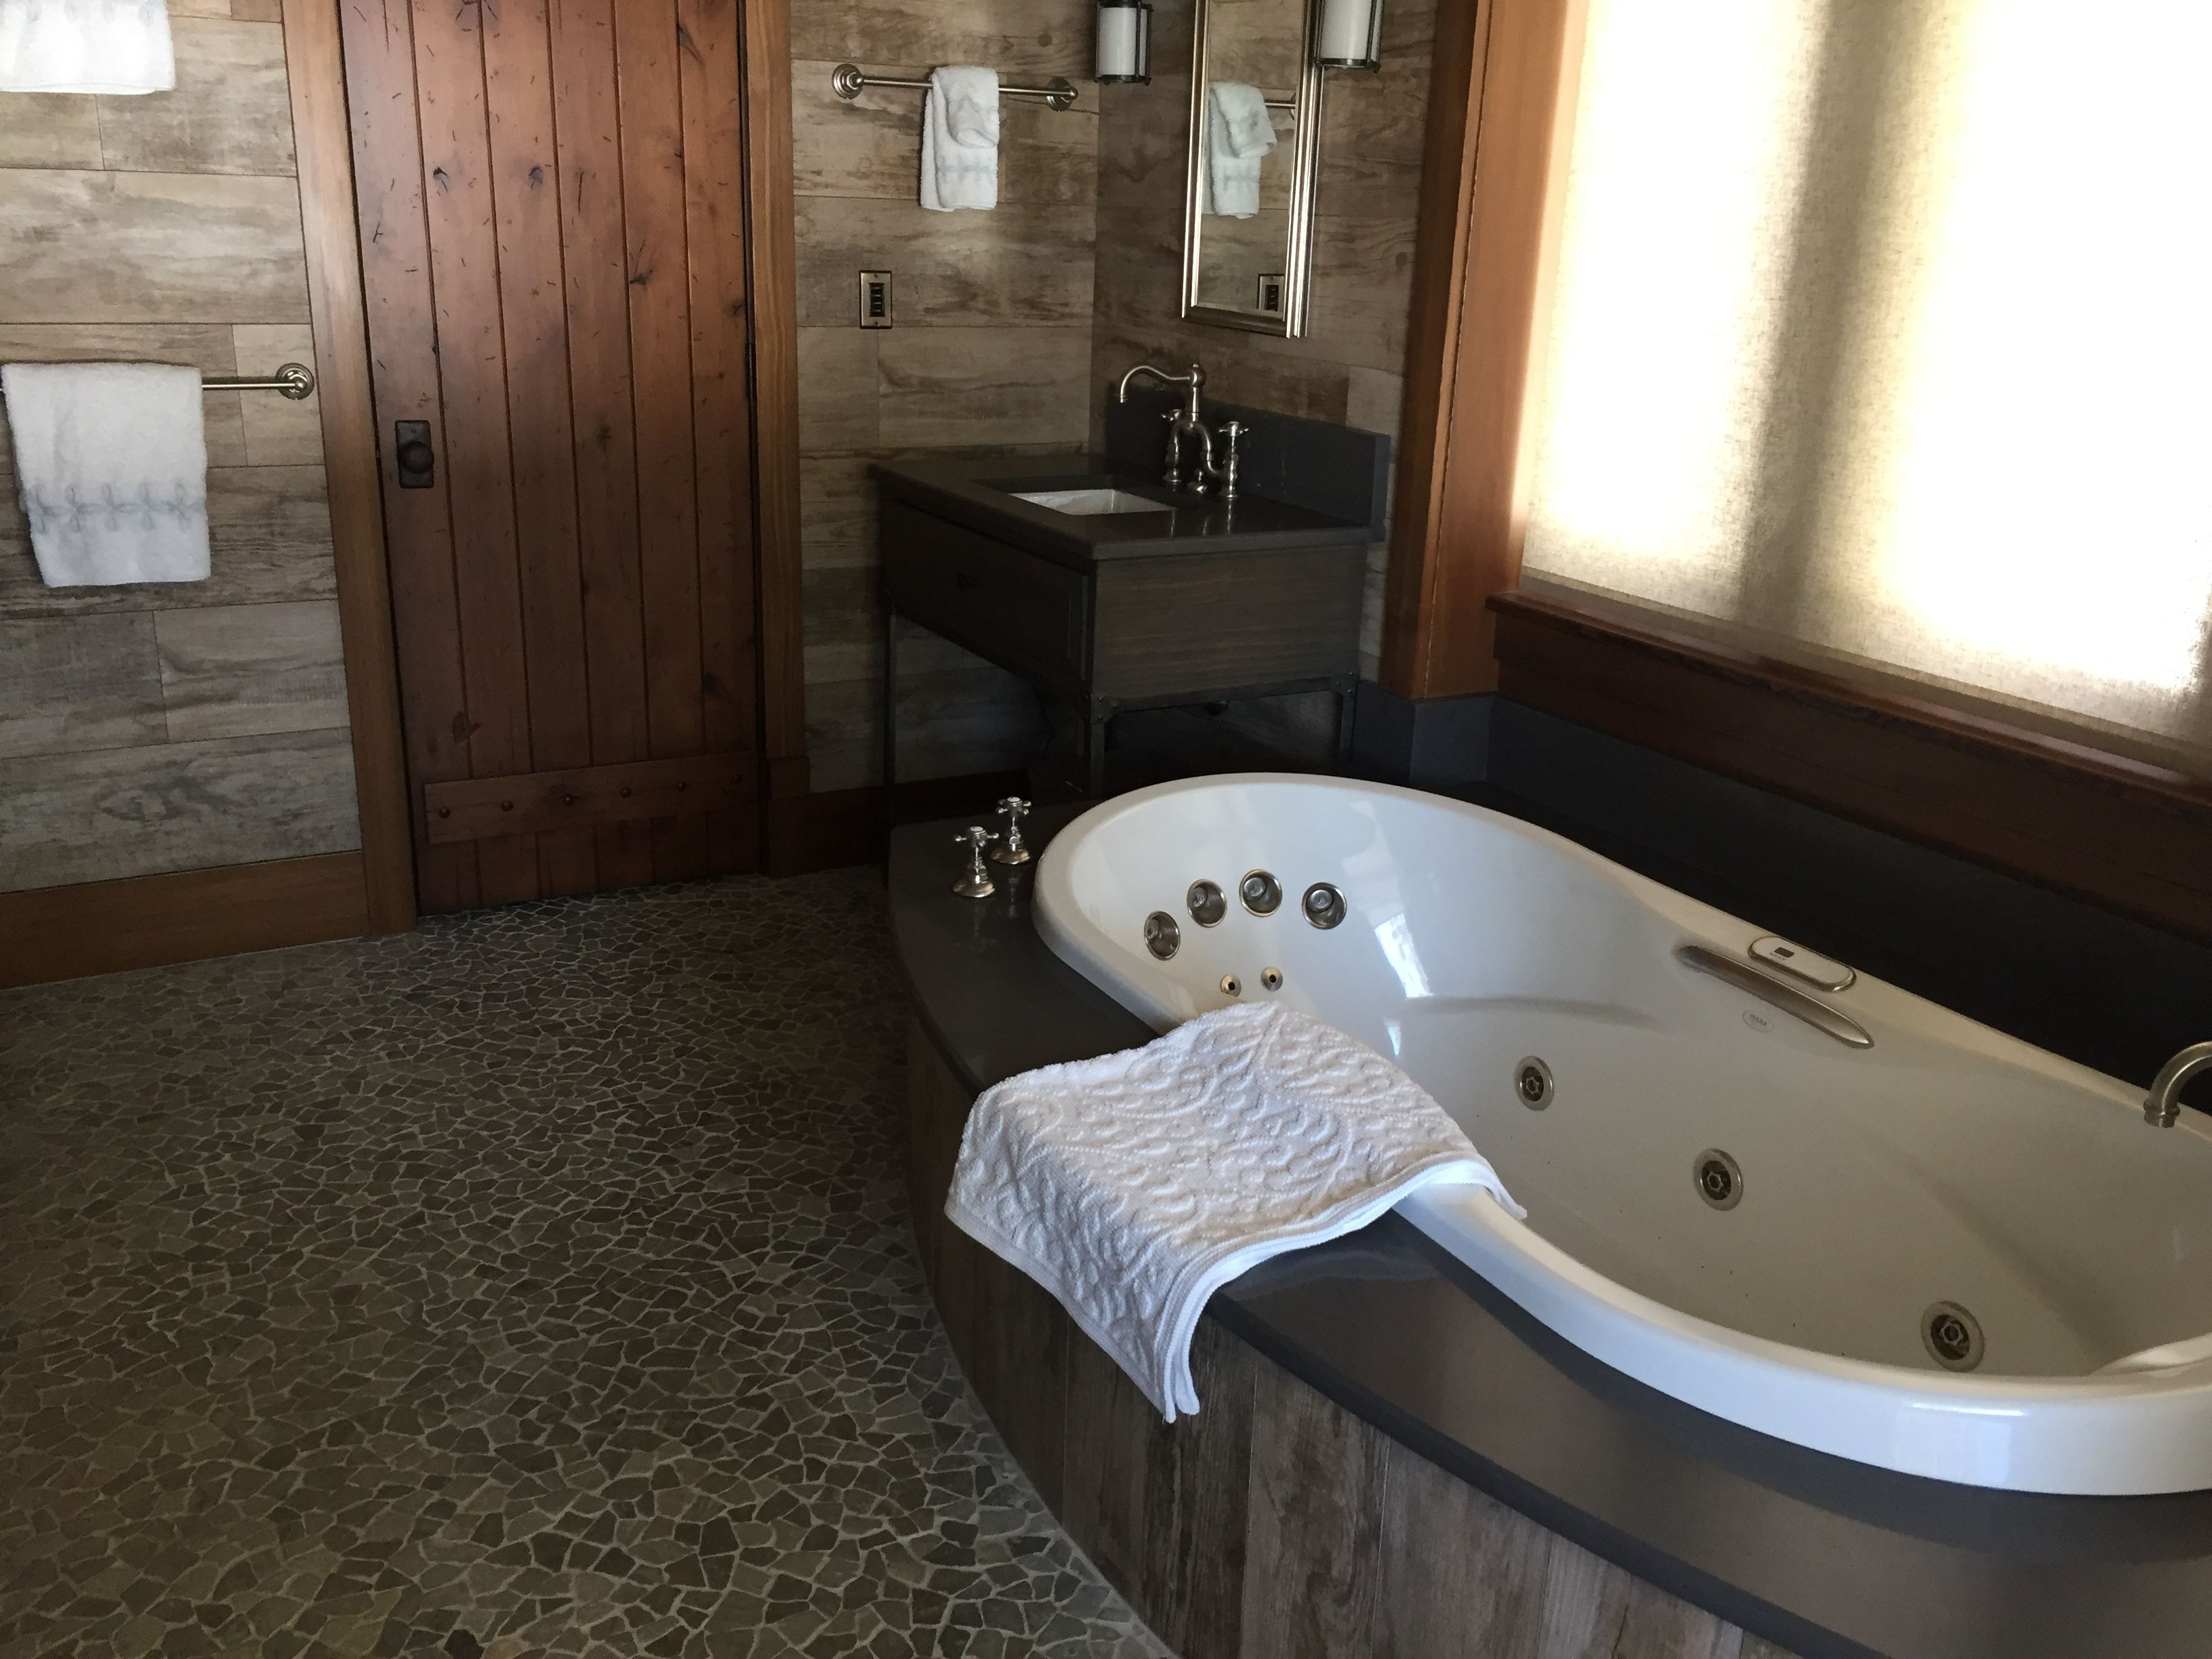 jet shower canada dimensions tubs tub your for jetted whirlpool amazing all photo splendid with wonderful bathtubs corner bathtub images beautiful full